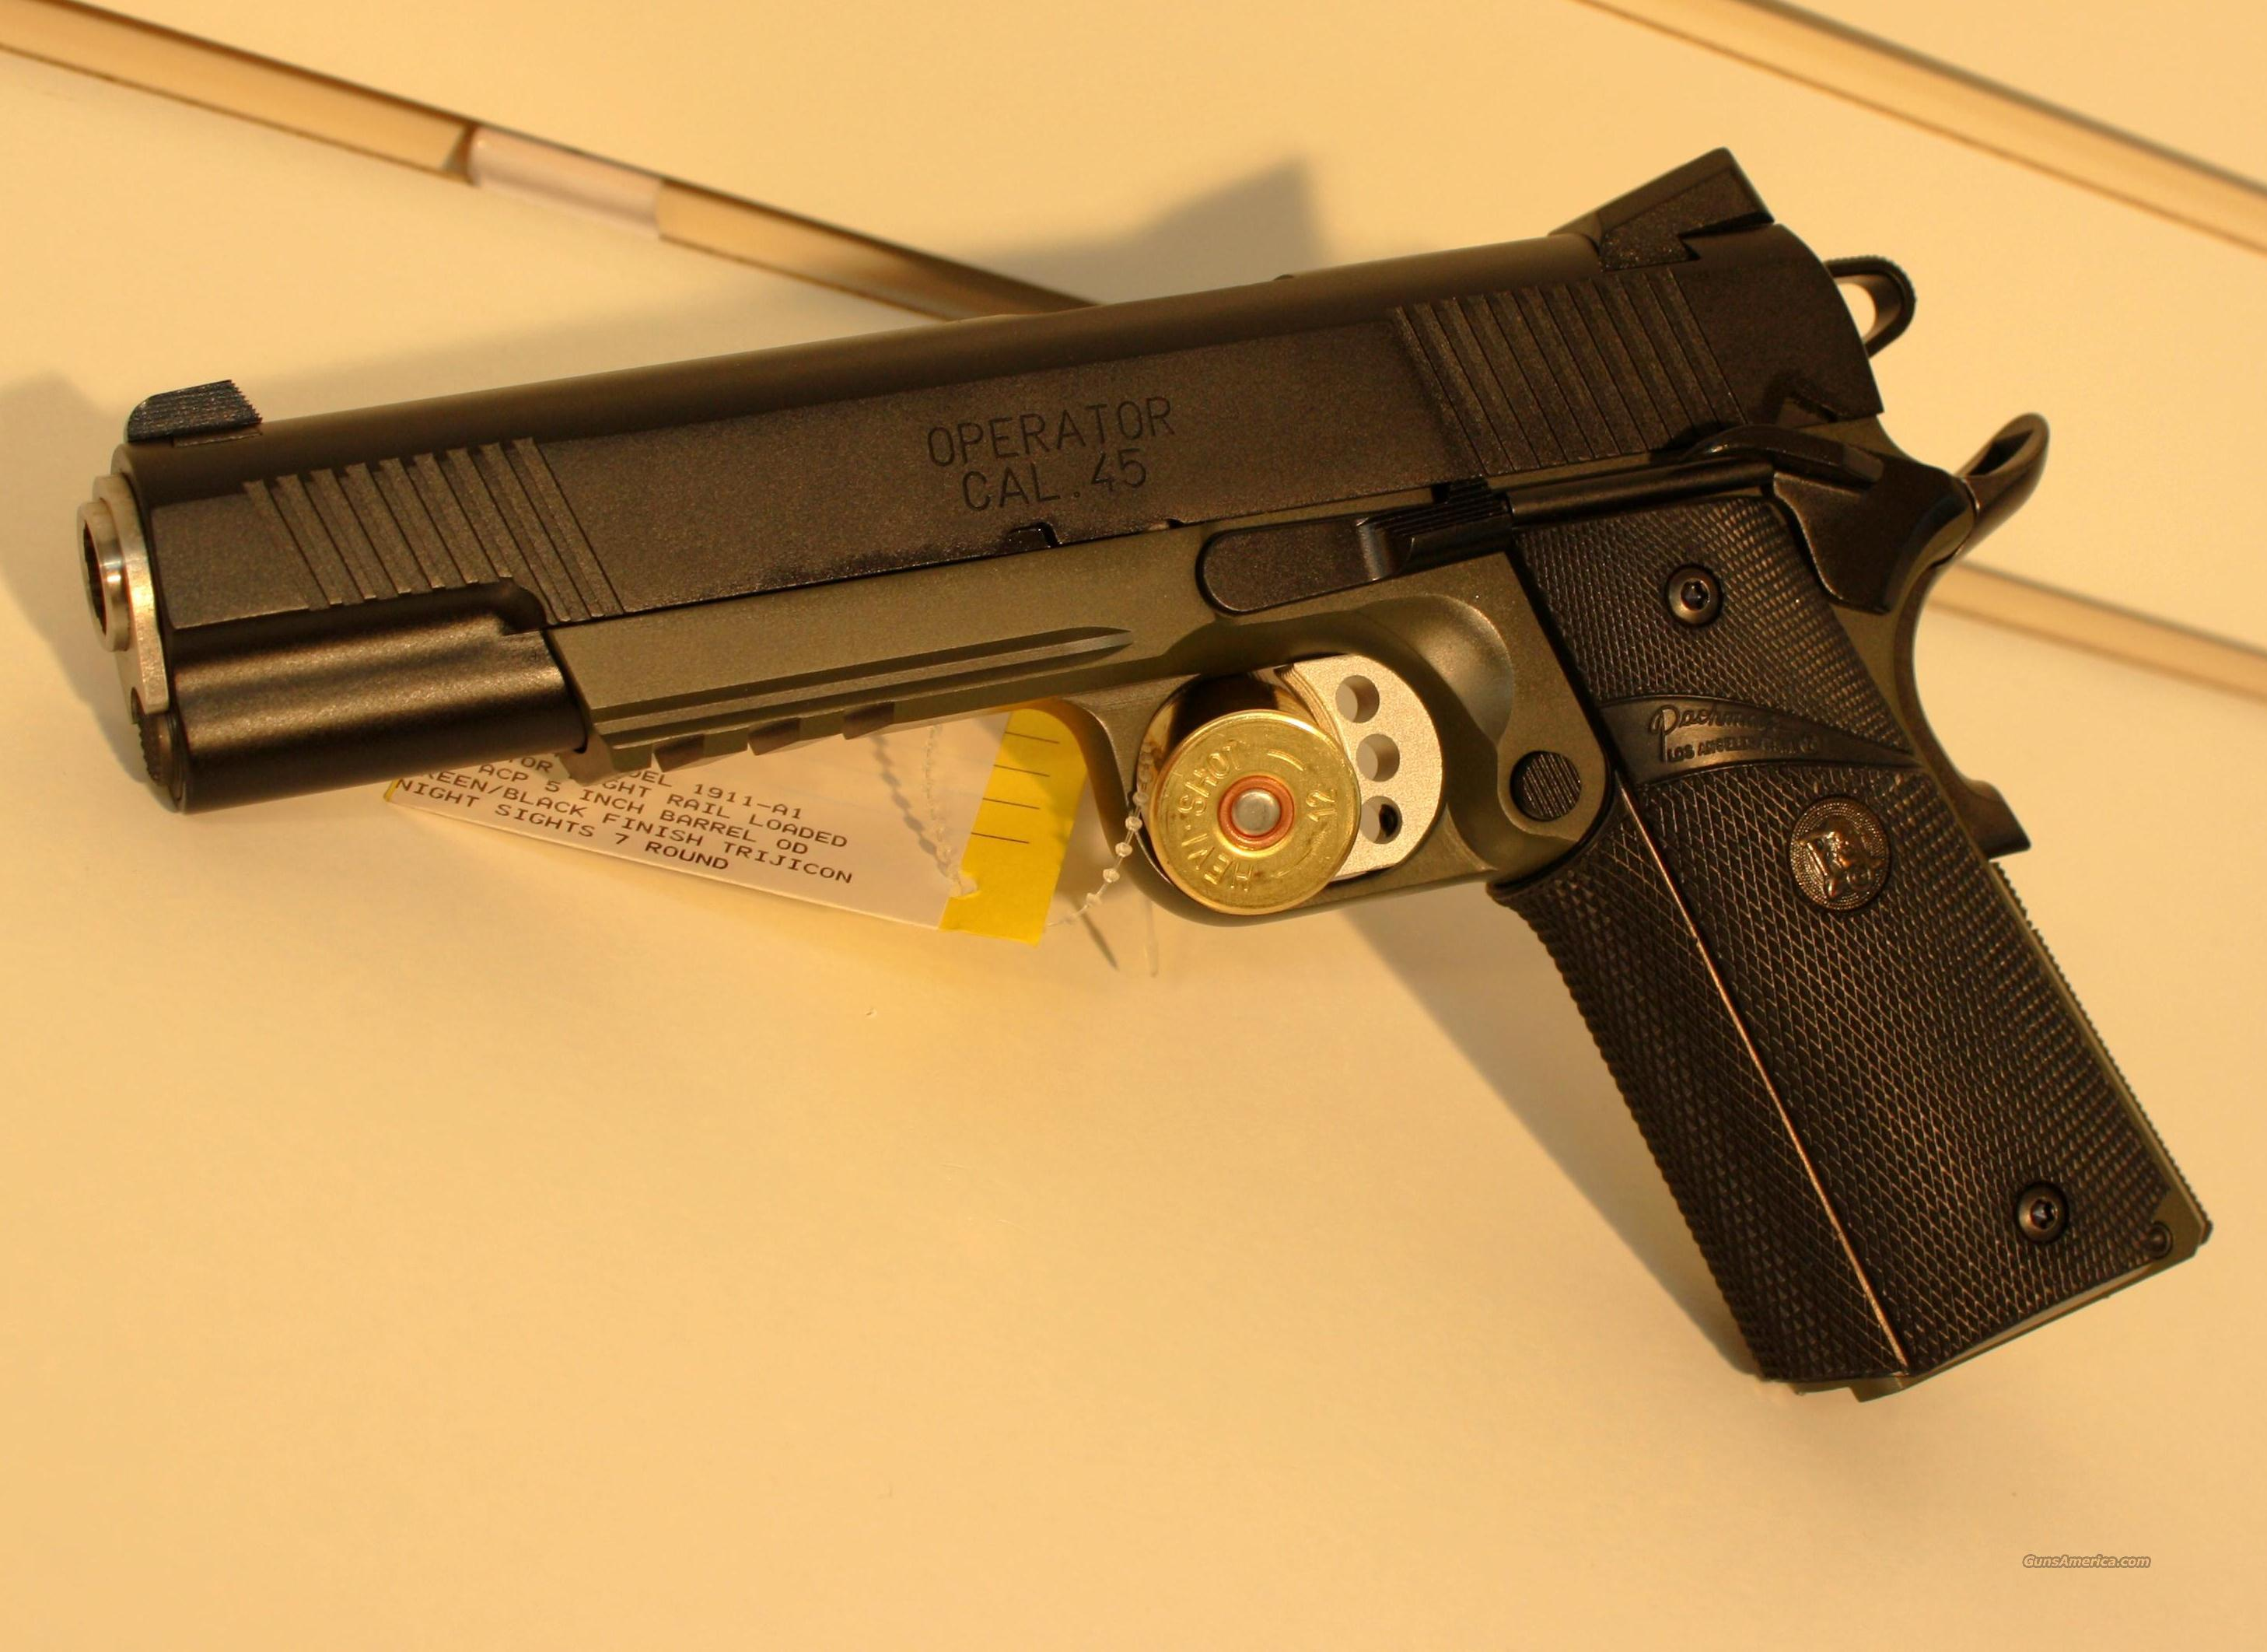 SPRINGFIELD 1911 OPERATOR LOADED PX9105MLP   Guns > Pistols > Springfield Armory Pistols > 1911 Type